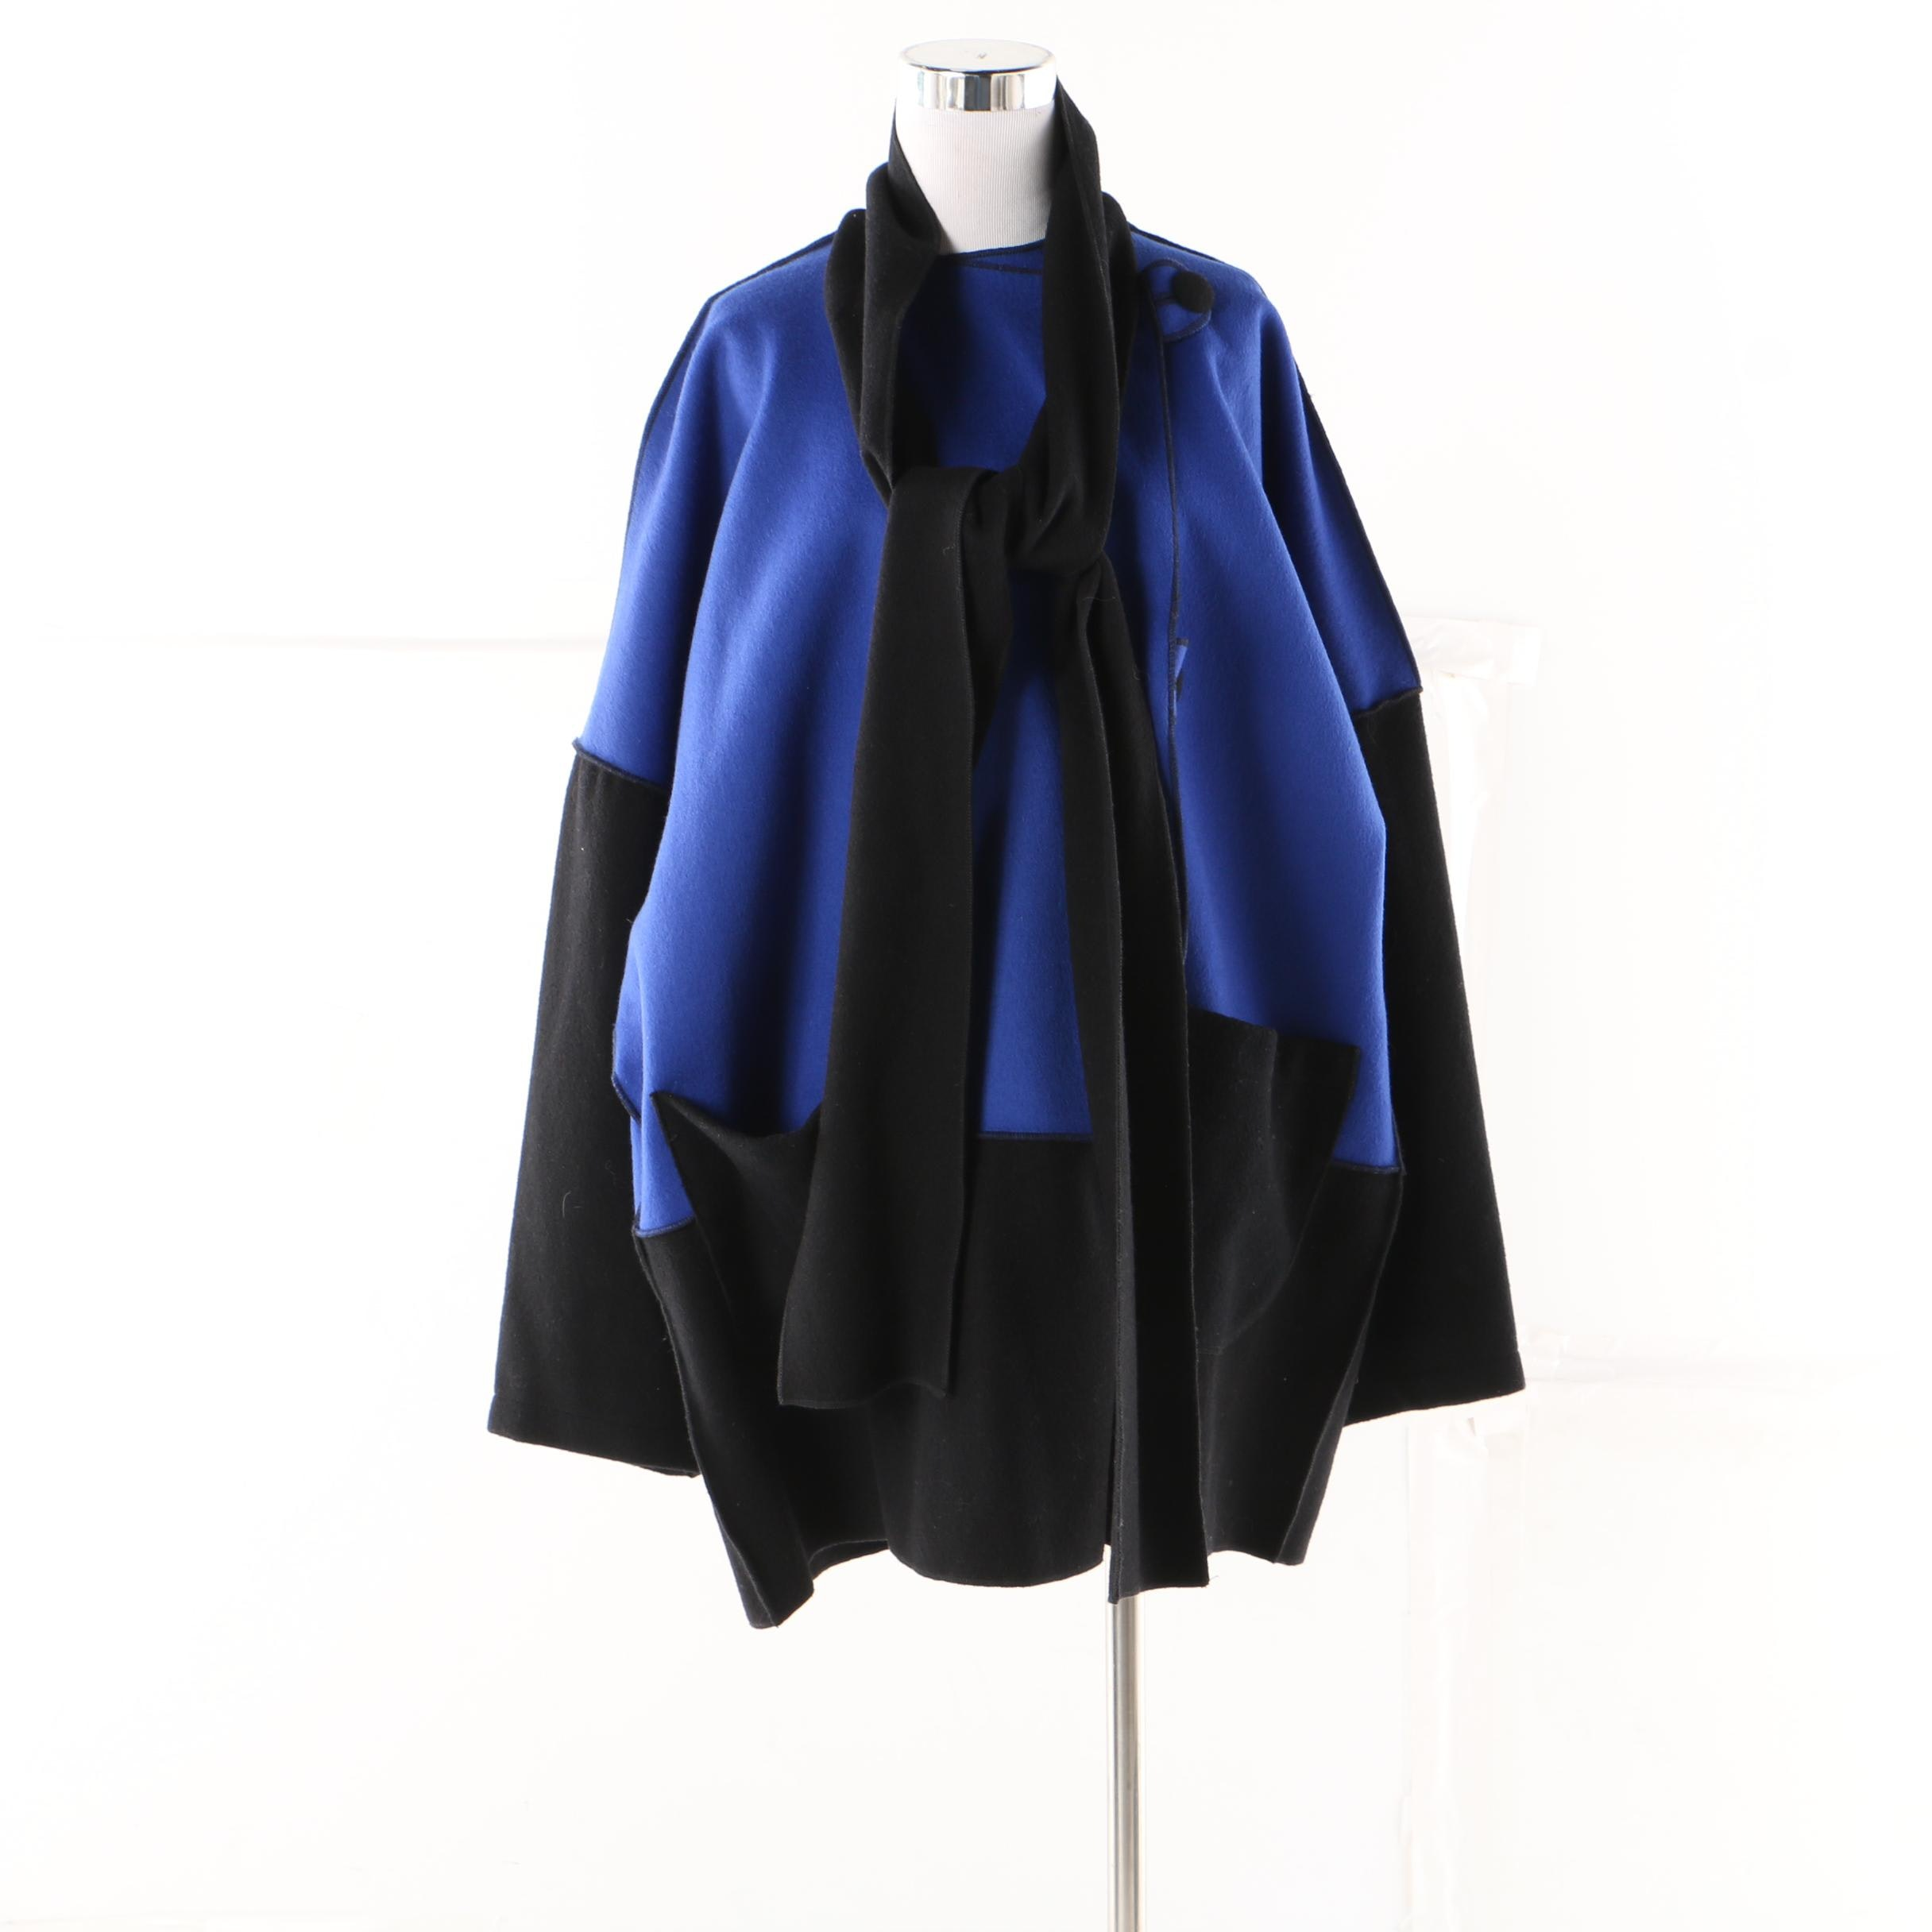 JJ Hobeau Oversized Wool Blue and Black Color Blocked Jacket with Collar Scarf